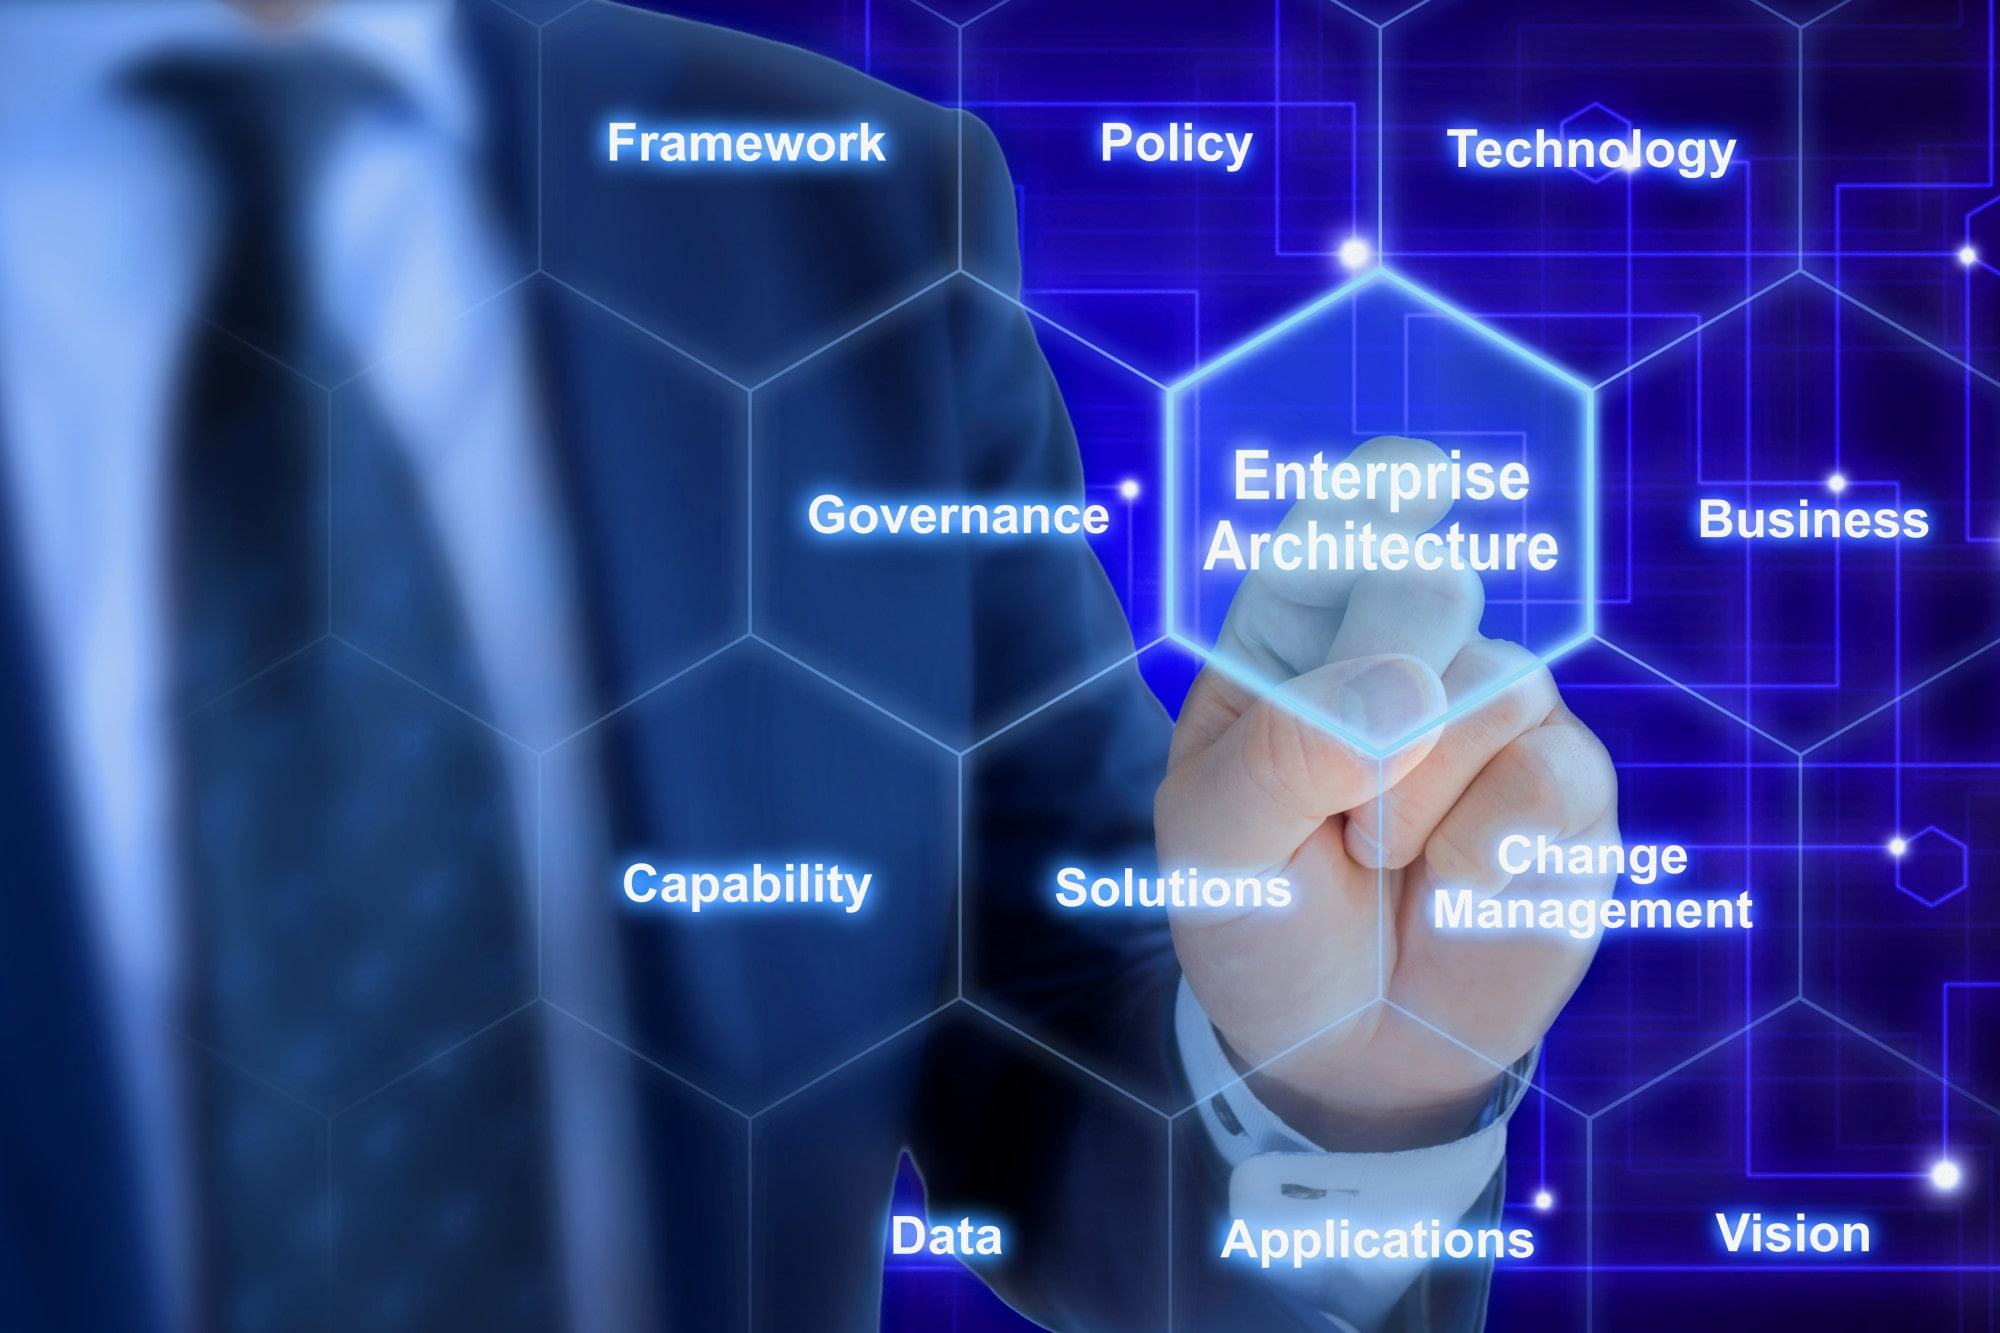 Enterprise Architect Job Outlook: What Does the Future Hold in This Field?